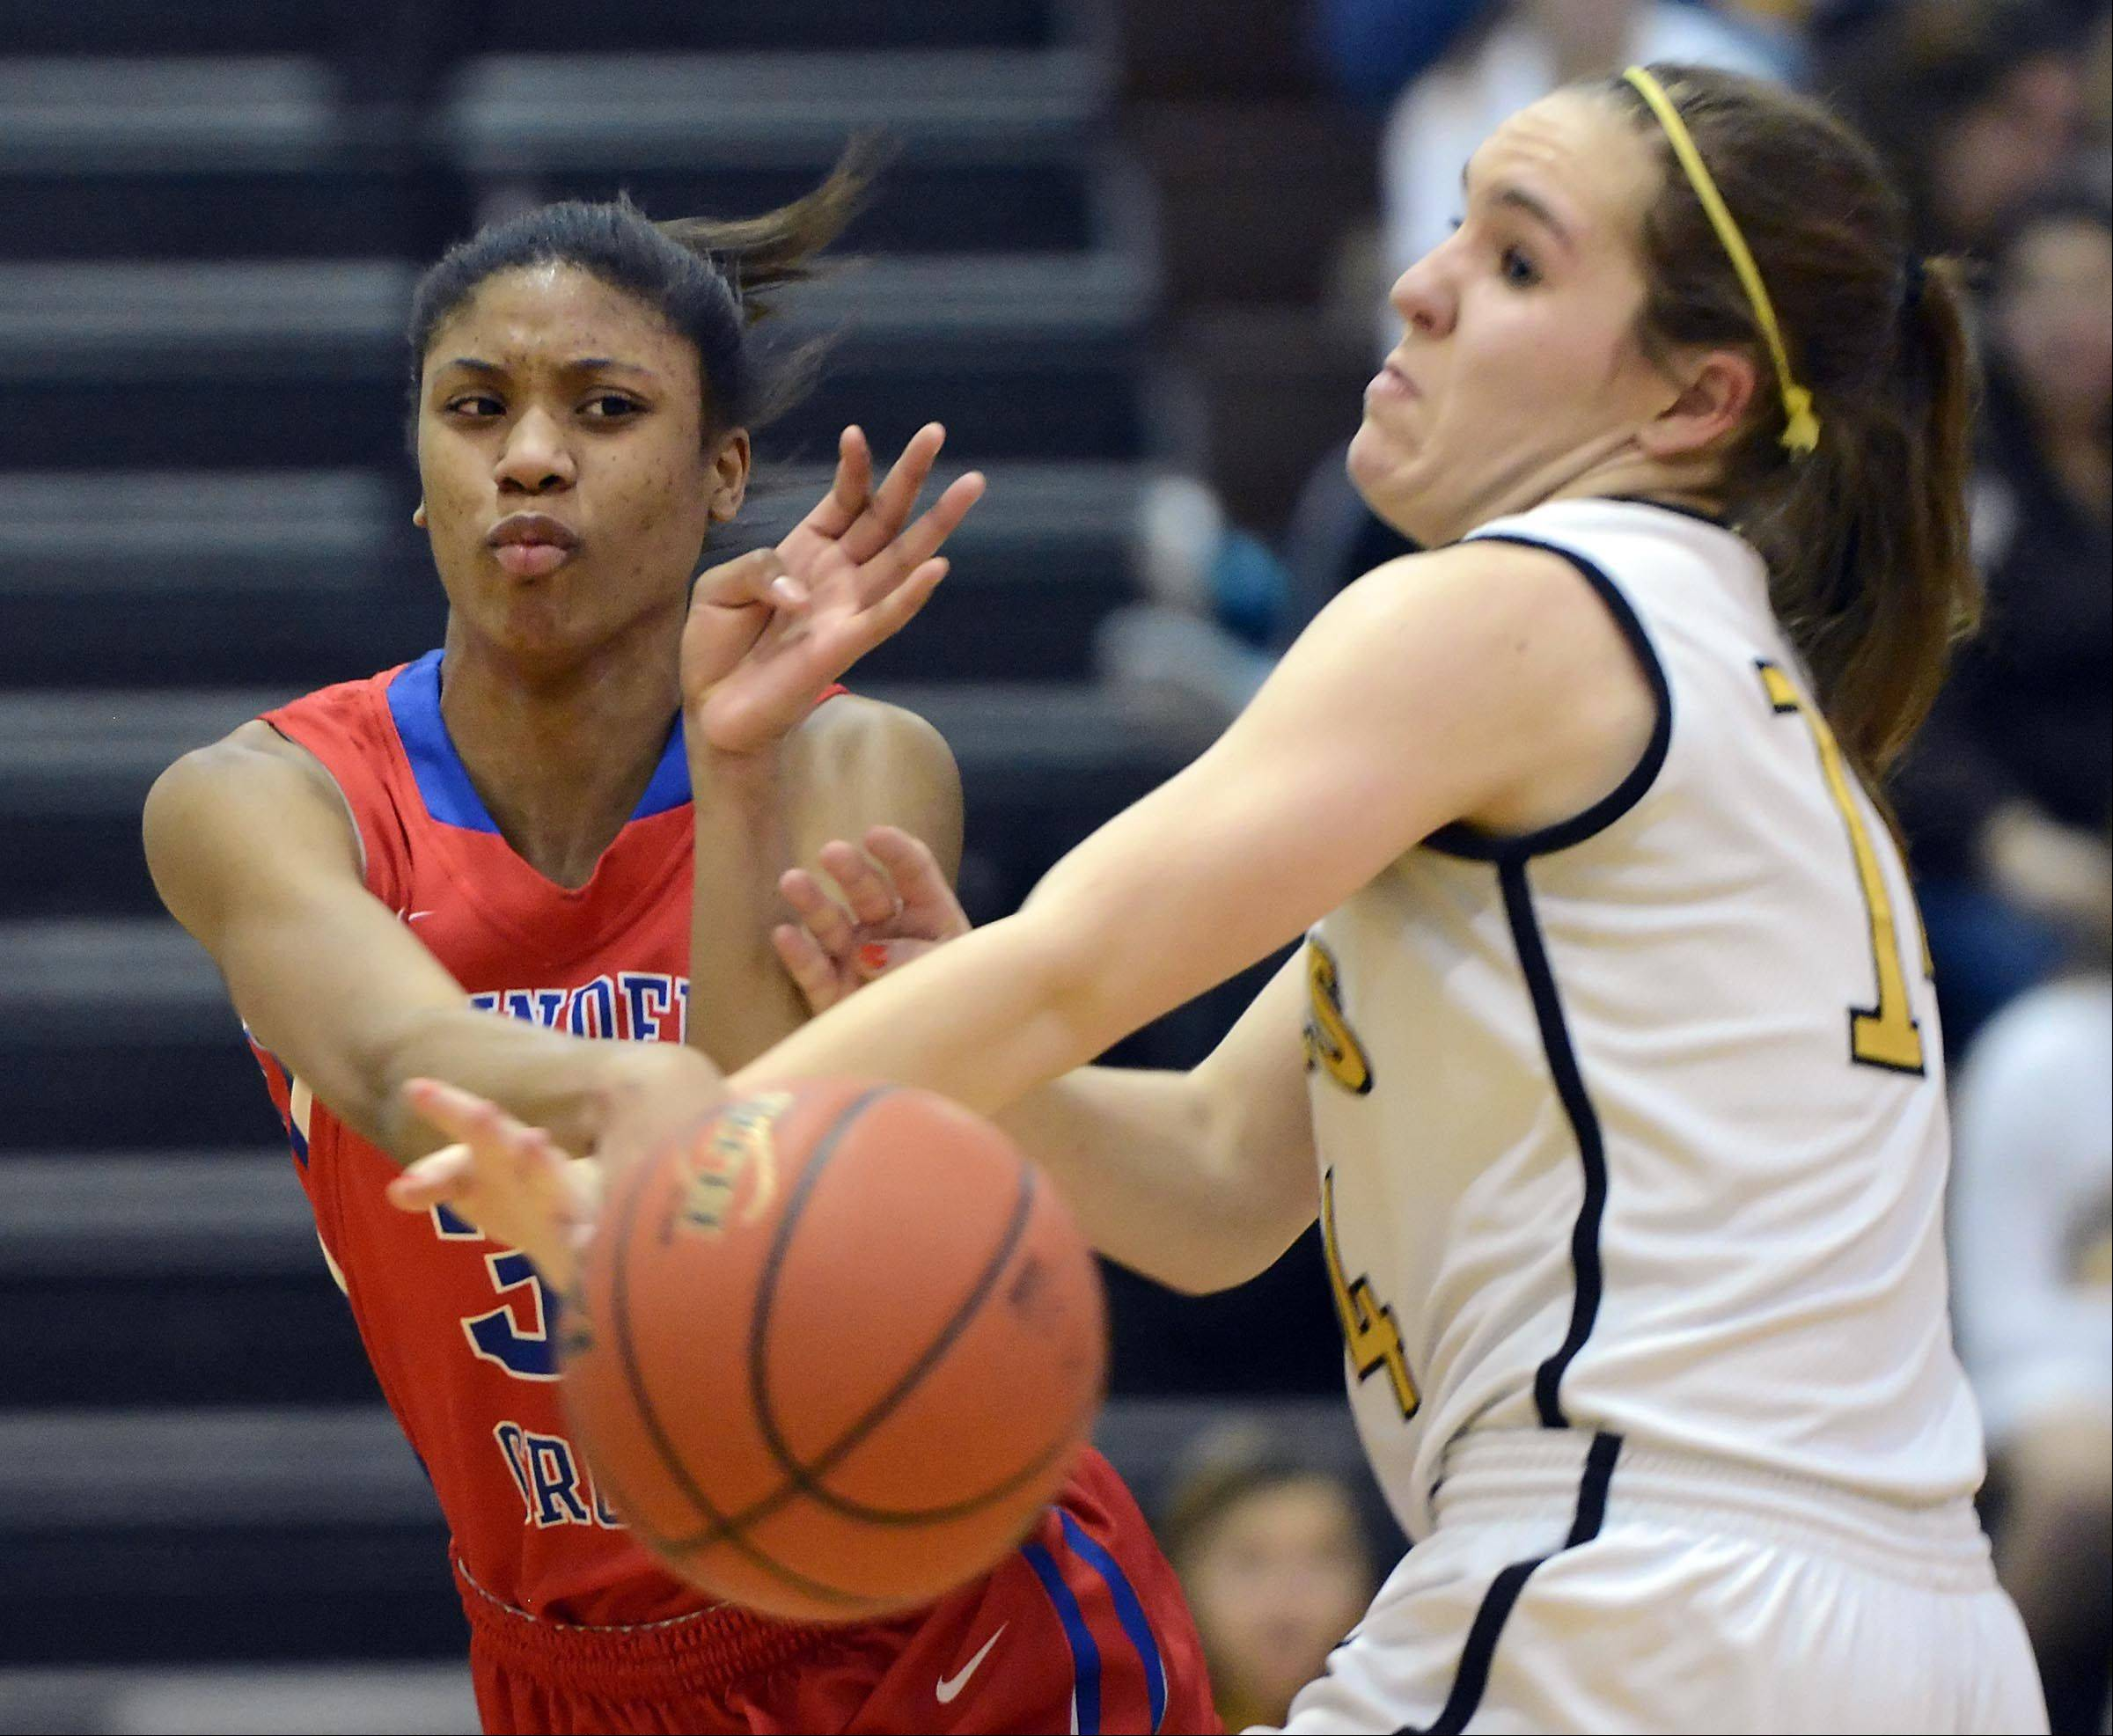 Images: Dundee-Crown vs. Jacobs girls basketball